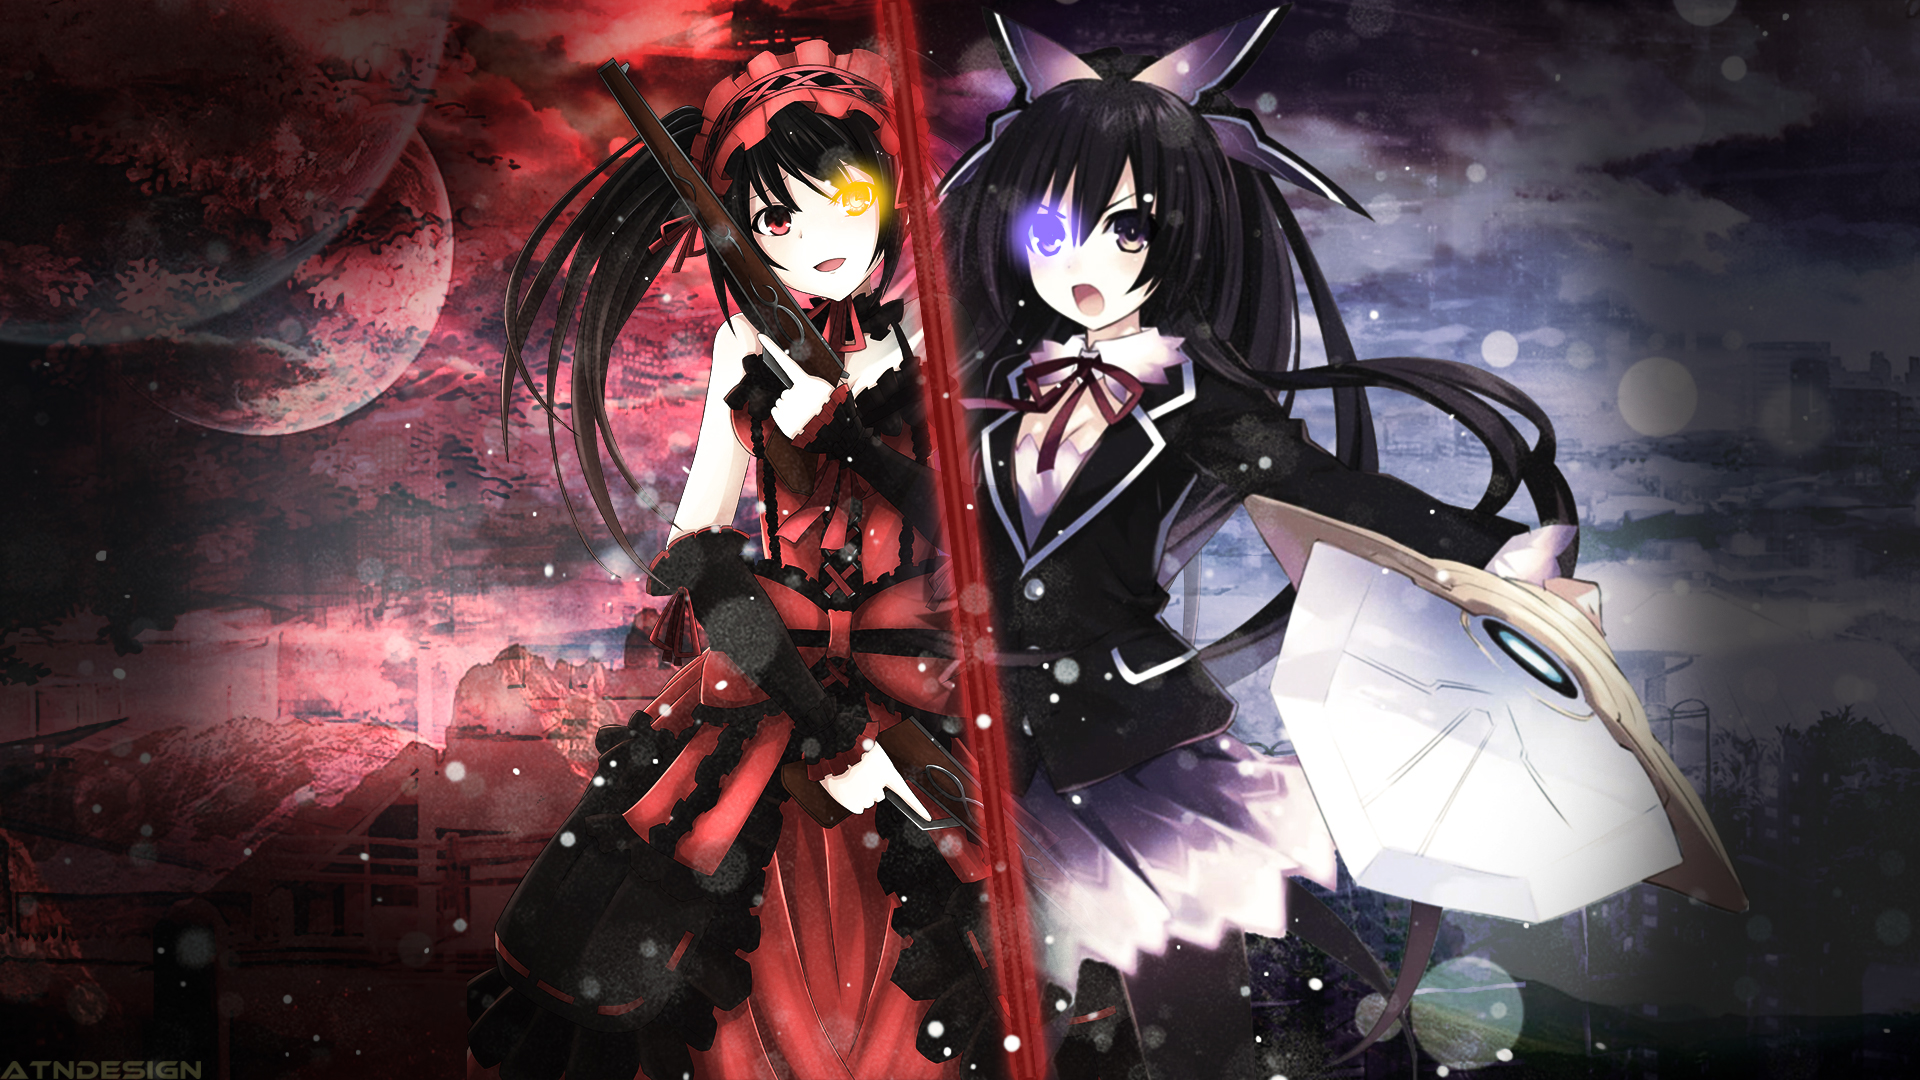 Anime Anime Girls Clocks Date A Live Long Hair Red Ey